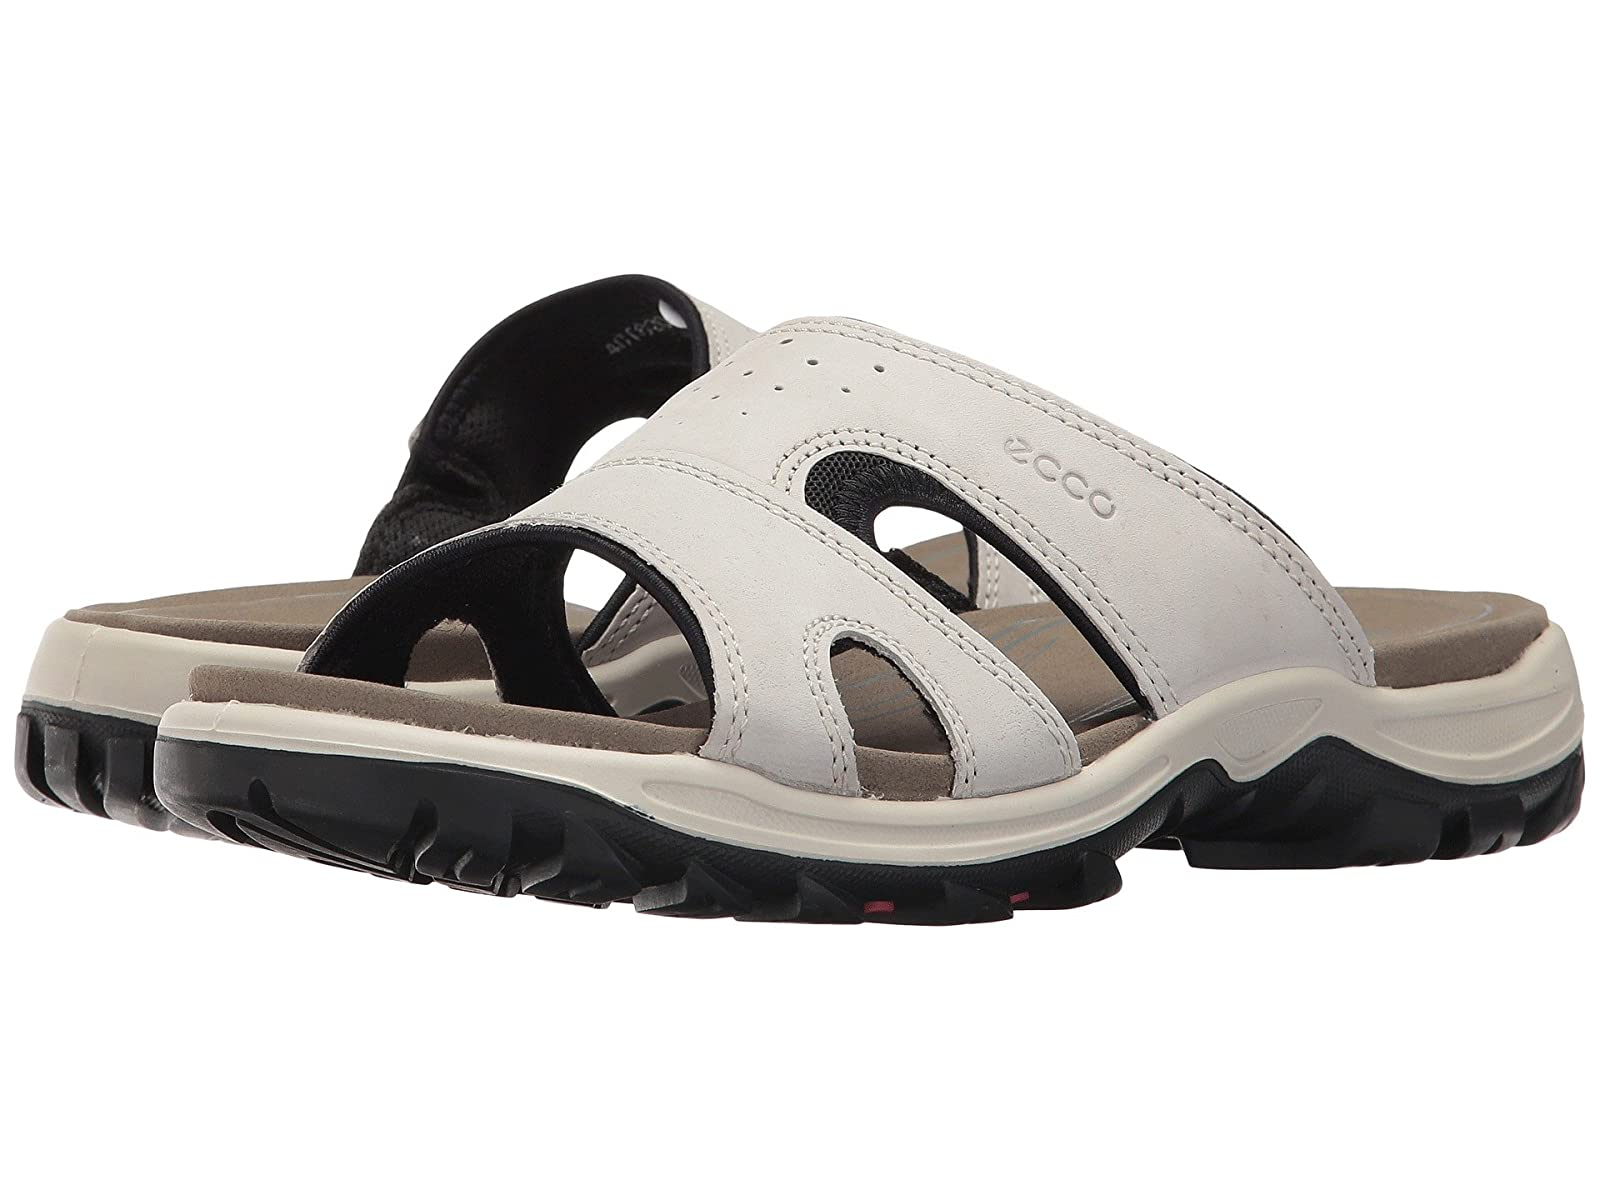 ECCO Sport Offroad Lite SlideComfortable and distinctive shoes